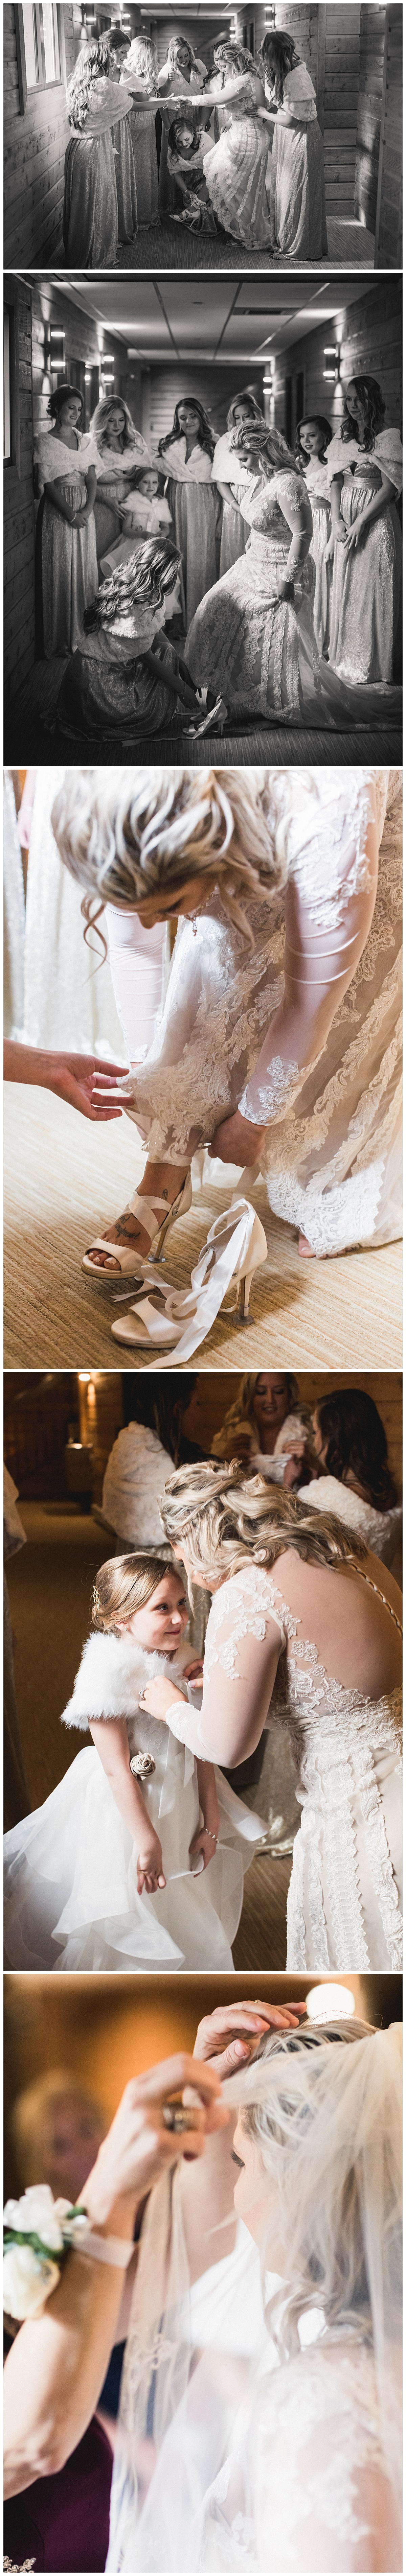 Curtis Wallis Wedding Photographer - Bride and Bridesmaids WatersEdge Event center